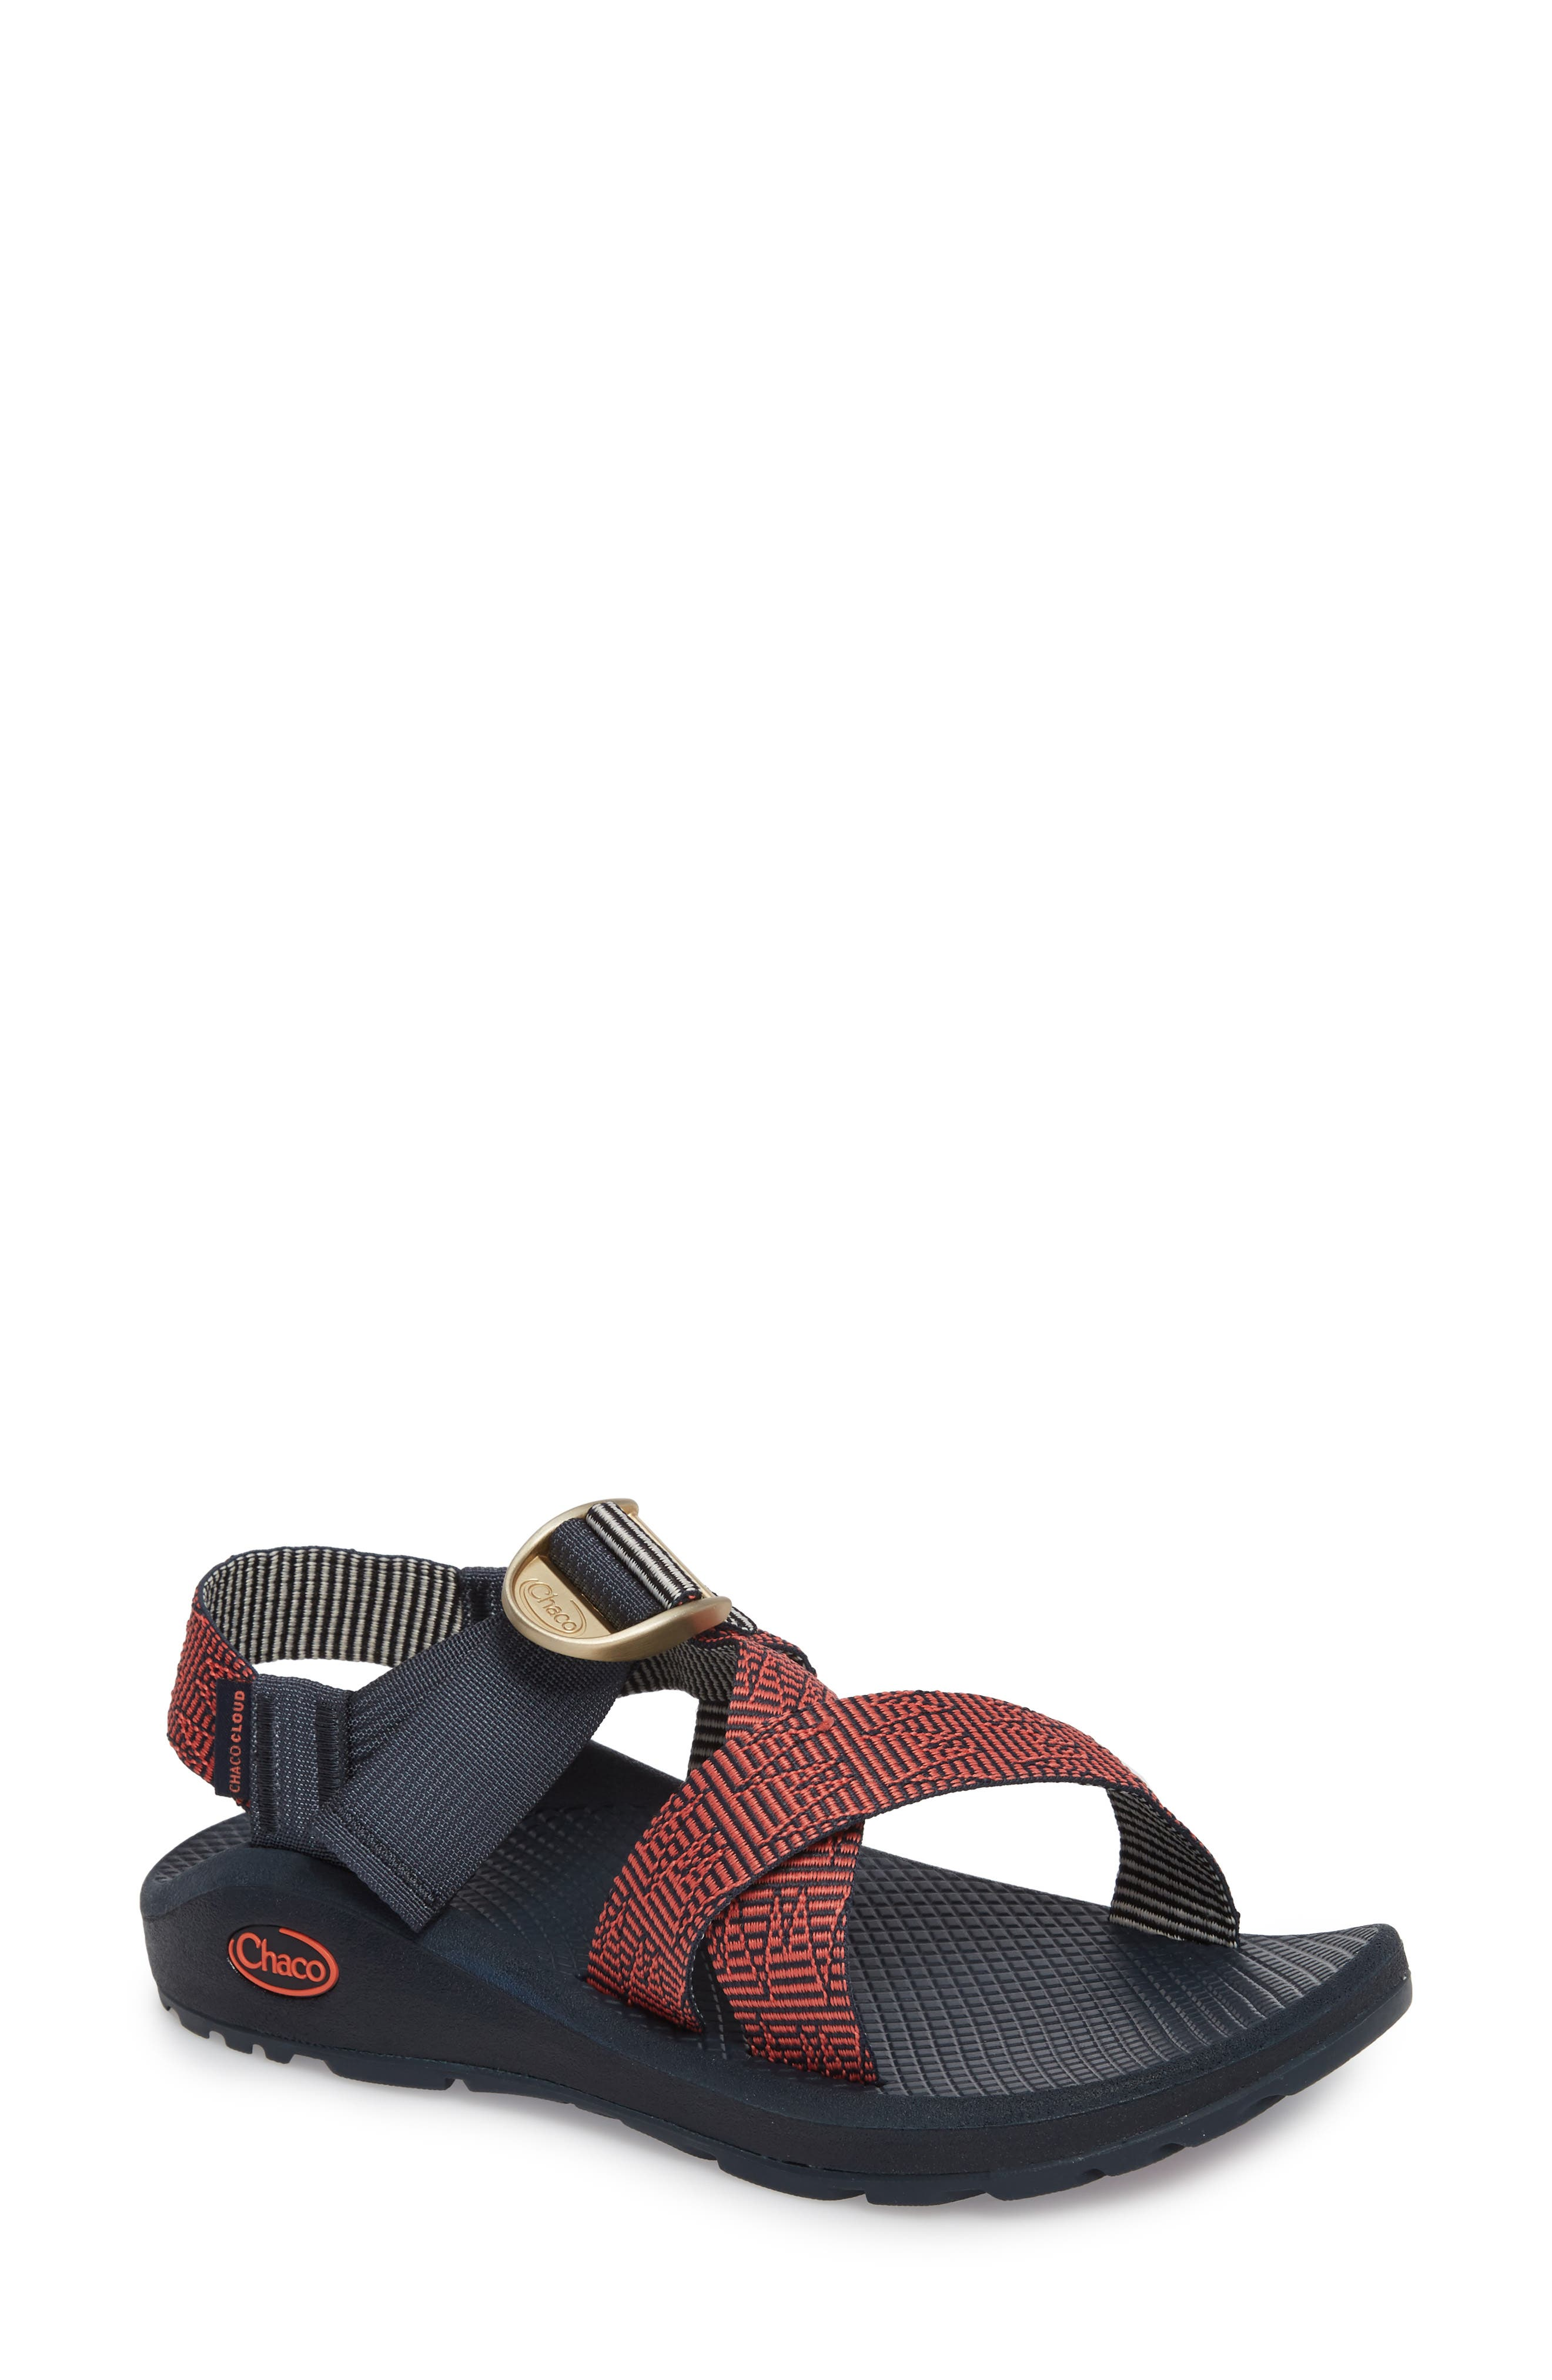 Mega Z/Cloud Sport Sandal,                             Main thumbnail 1, color,                             Blazer Navy